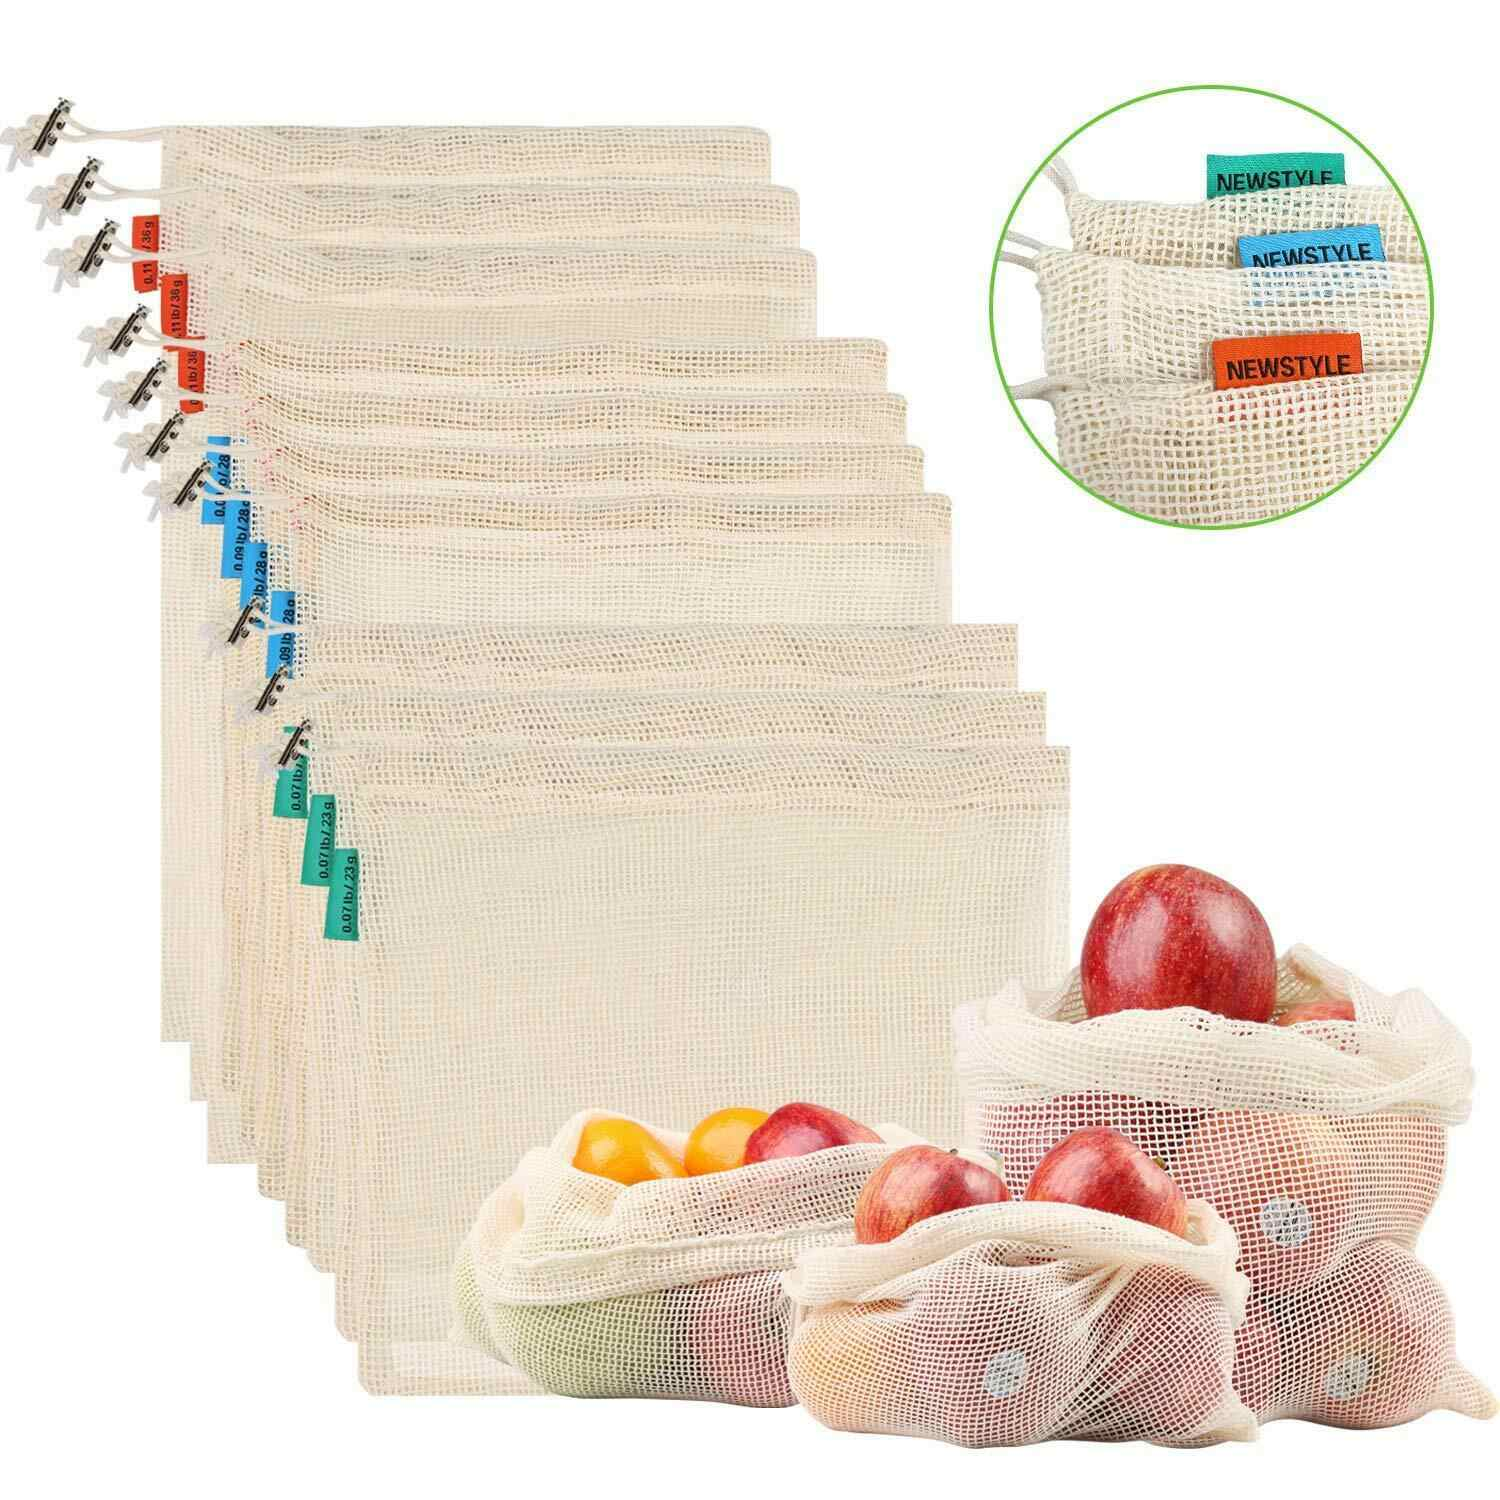 1 pcs Reusable Produce Bags Cotton Vegetable Bags Mesh Bags With Drawstring Home Kitchen Fruit And Vegetable Storage ecologico